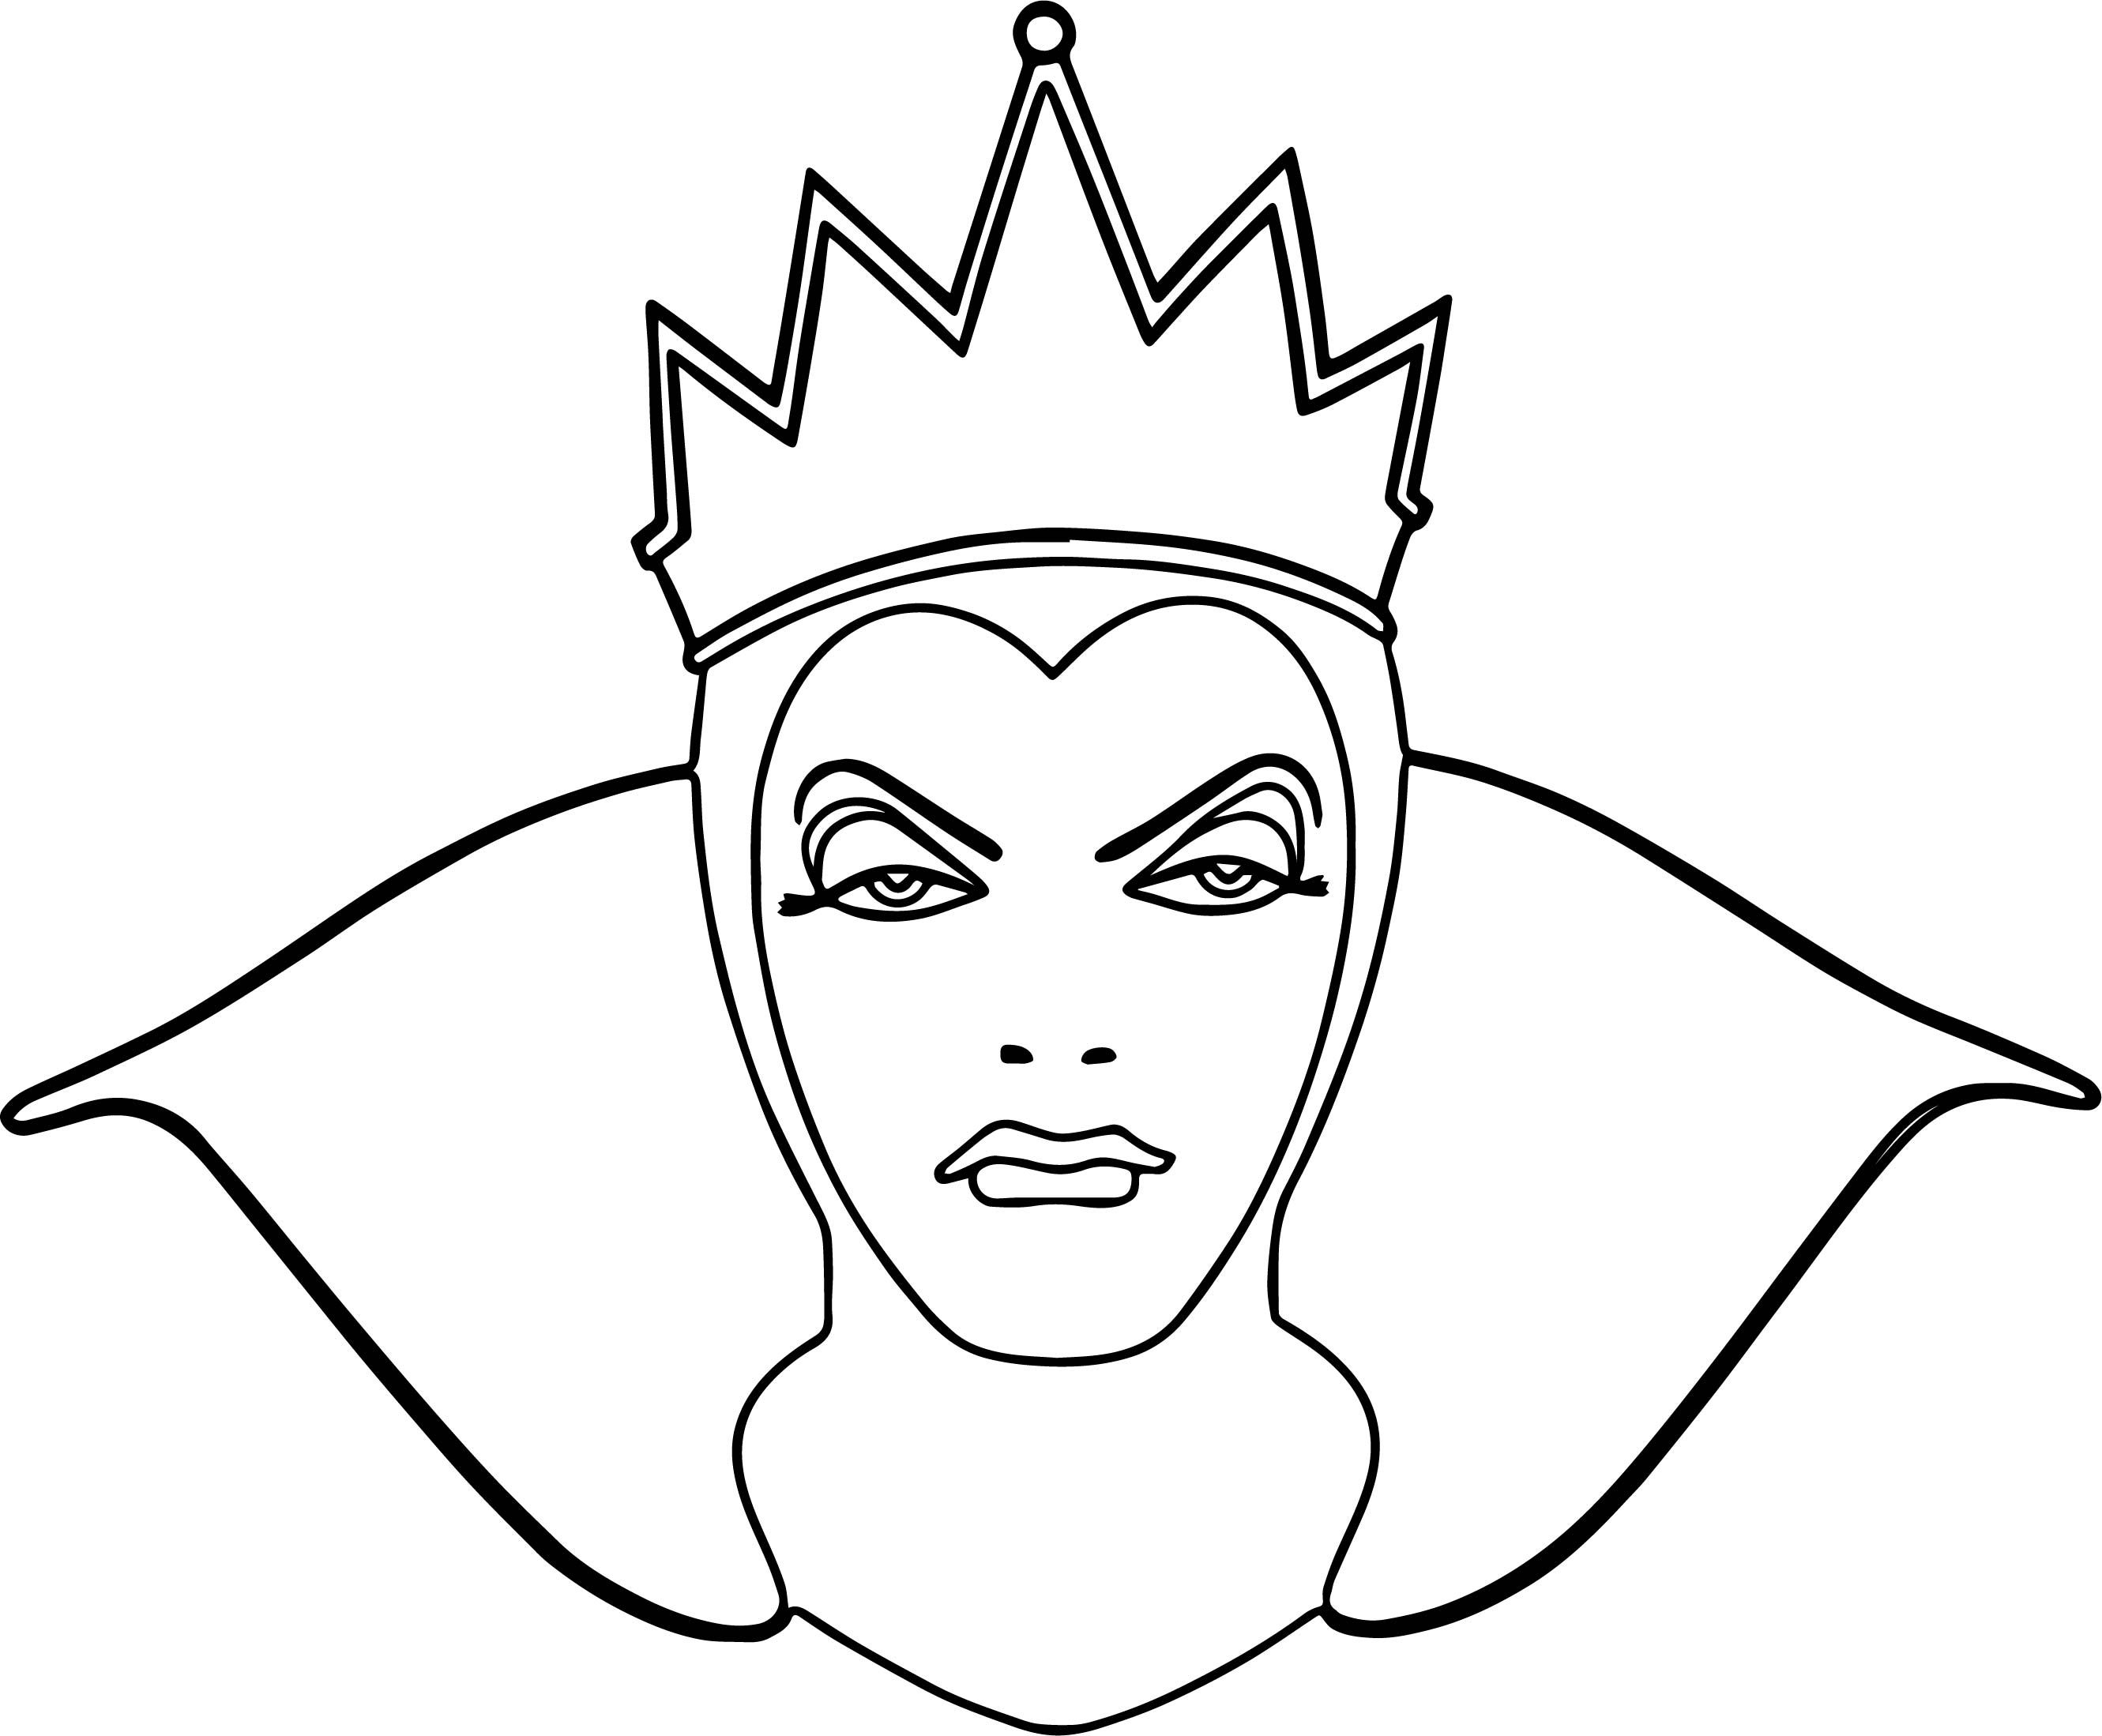 Cool Snow White Evil Queen Witch And Huntsman Front View Face Coloring Page Snow White Evil Queen Snow White Coloring Pages Coloring Pages